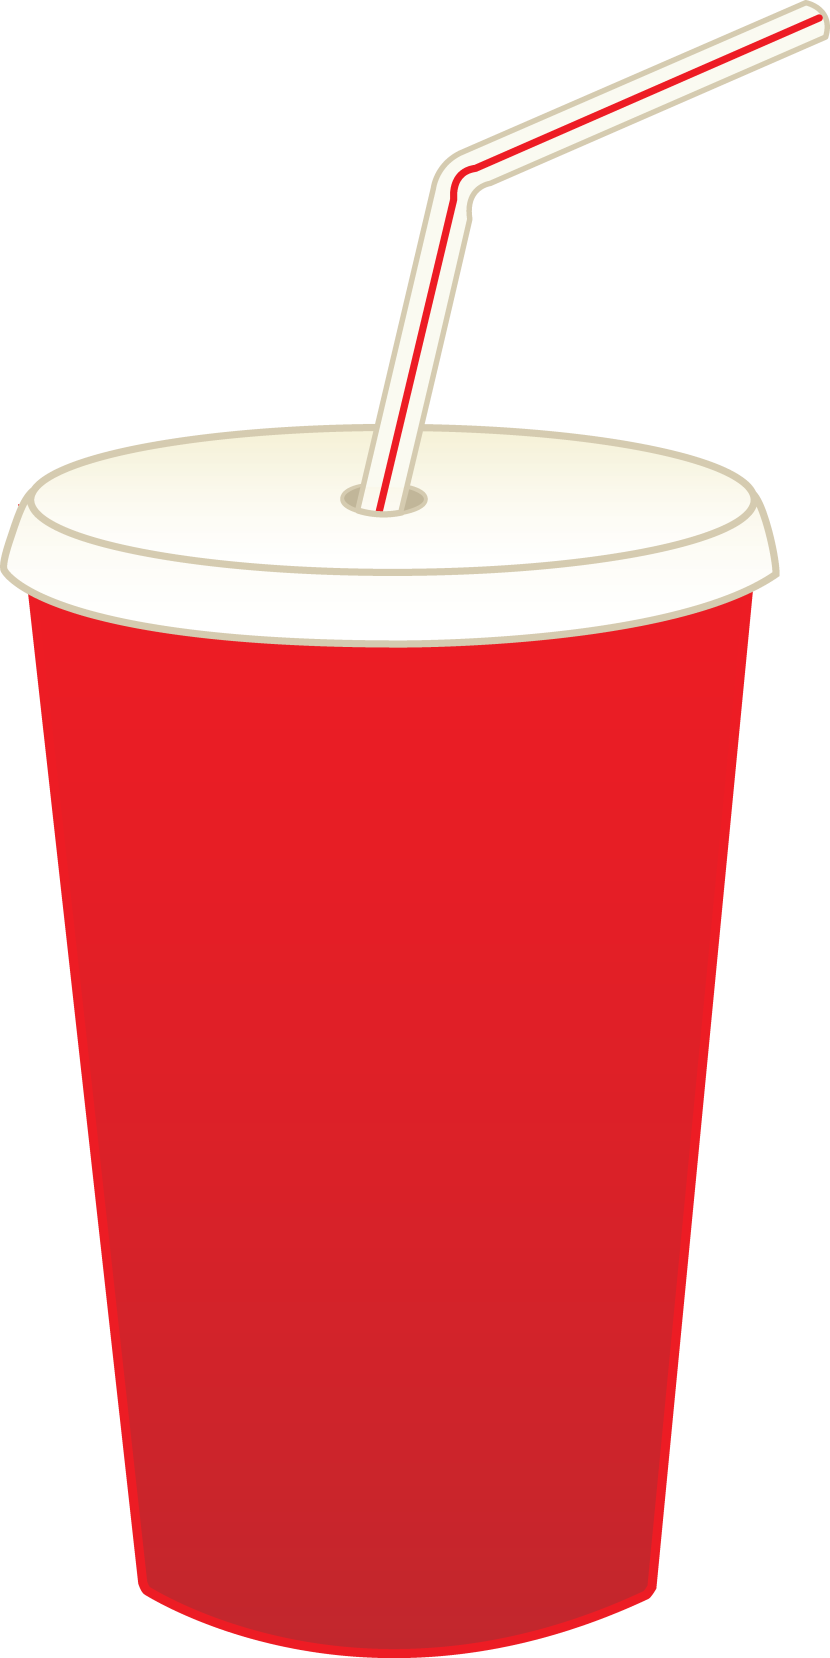 Drink clipart fry Clip drink Soda 2 can